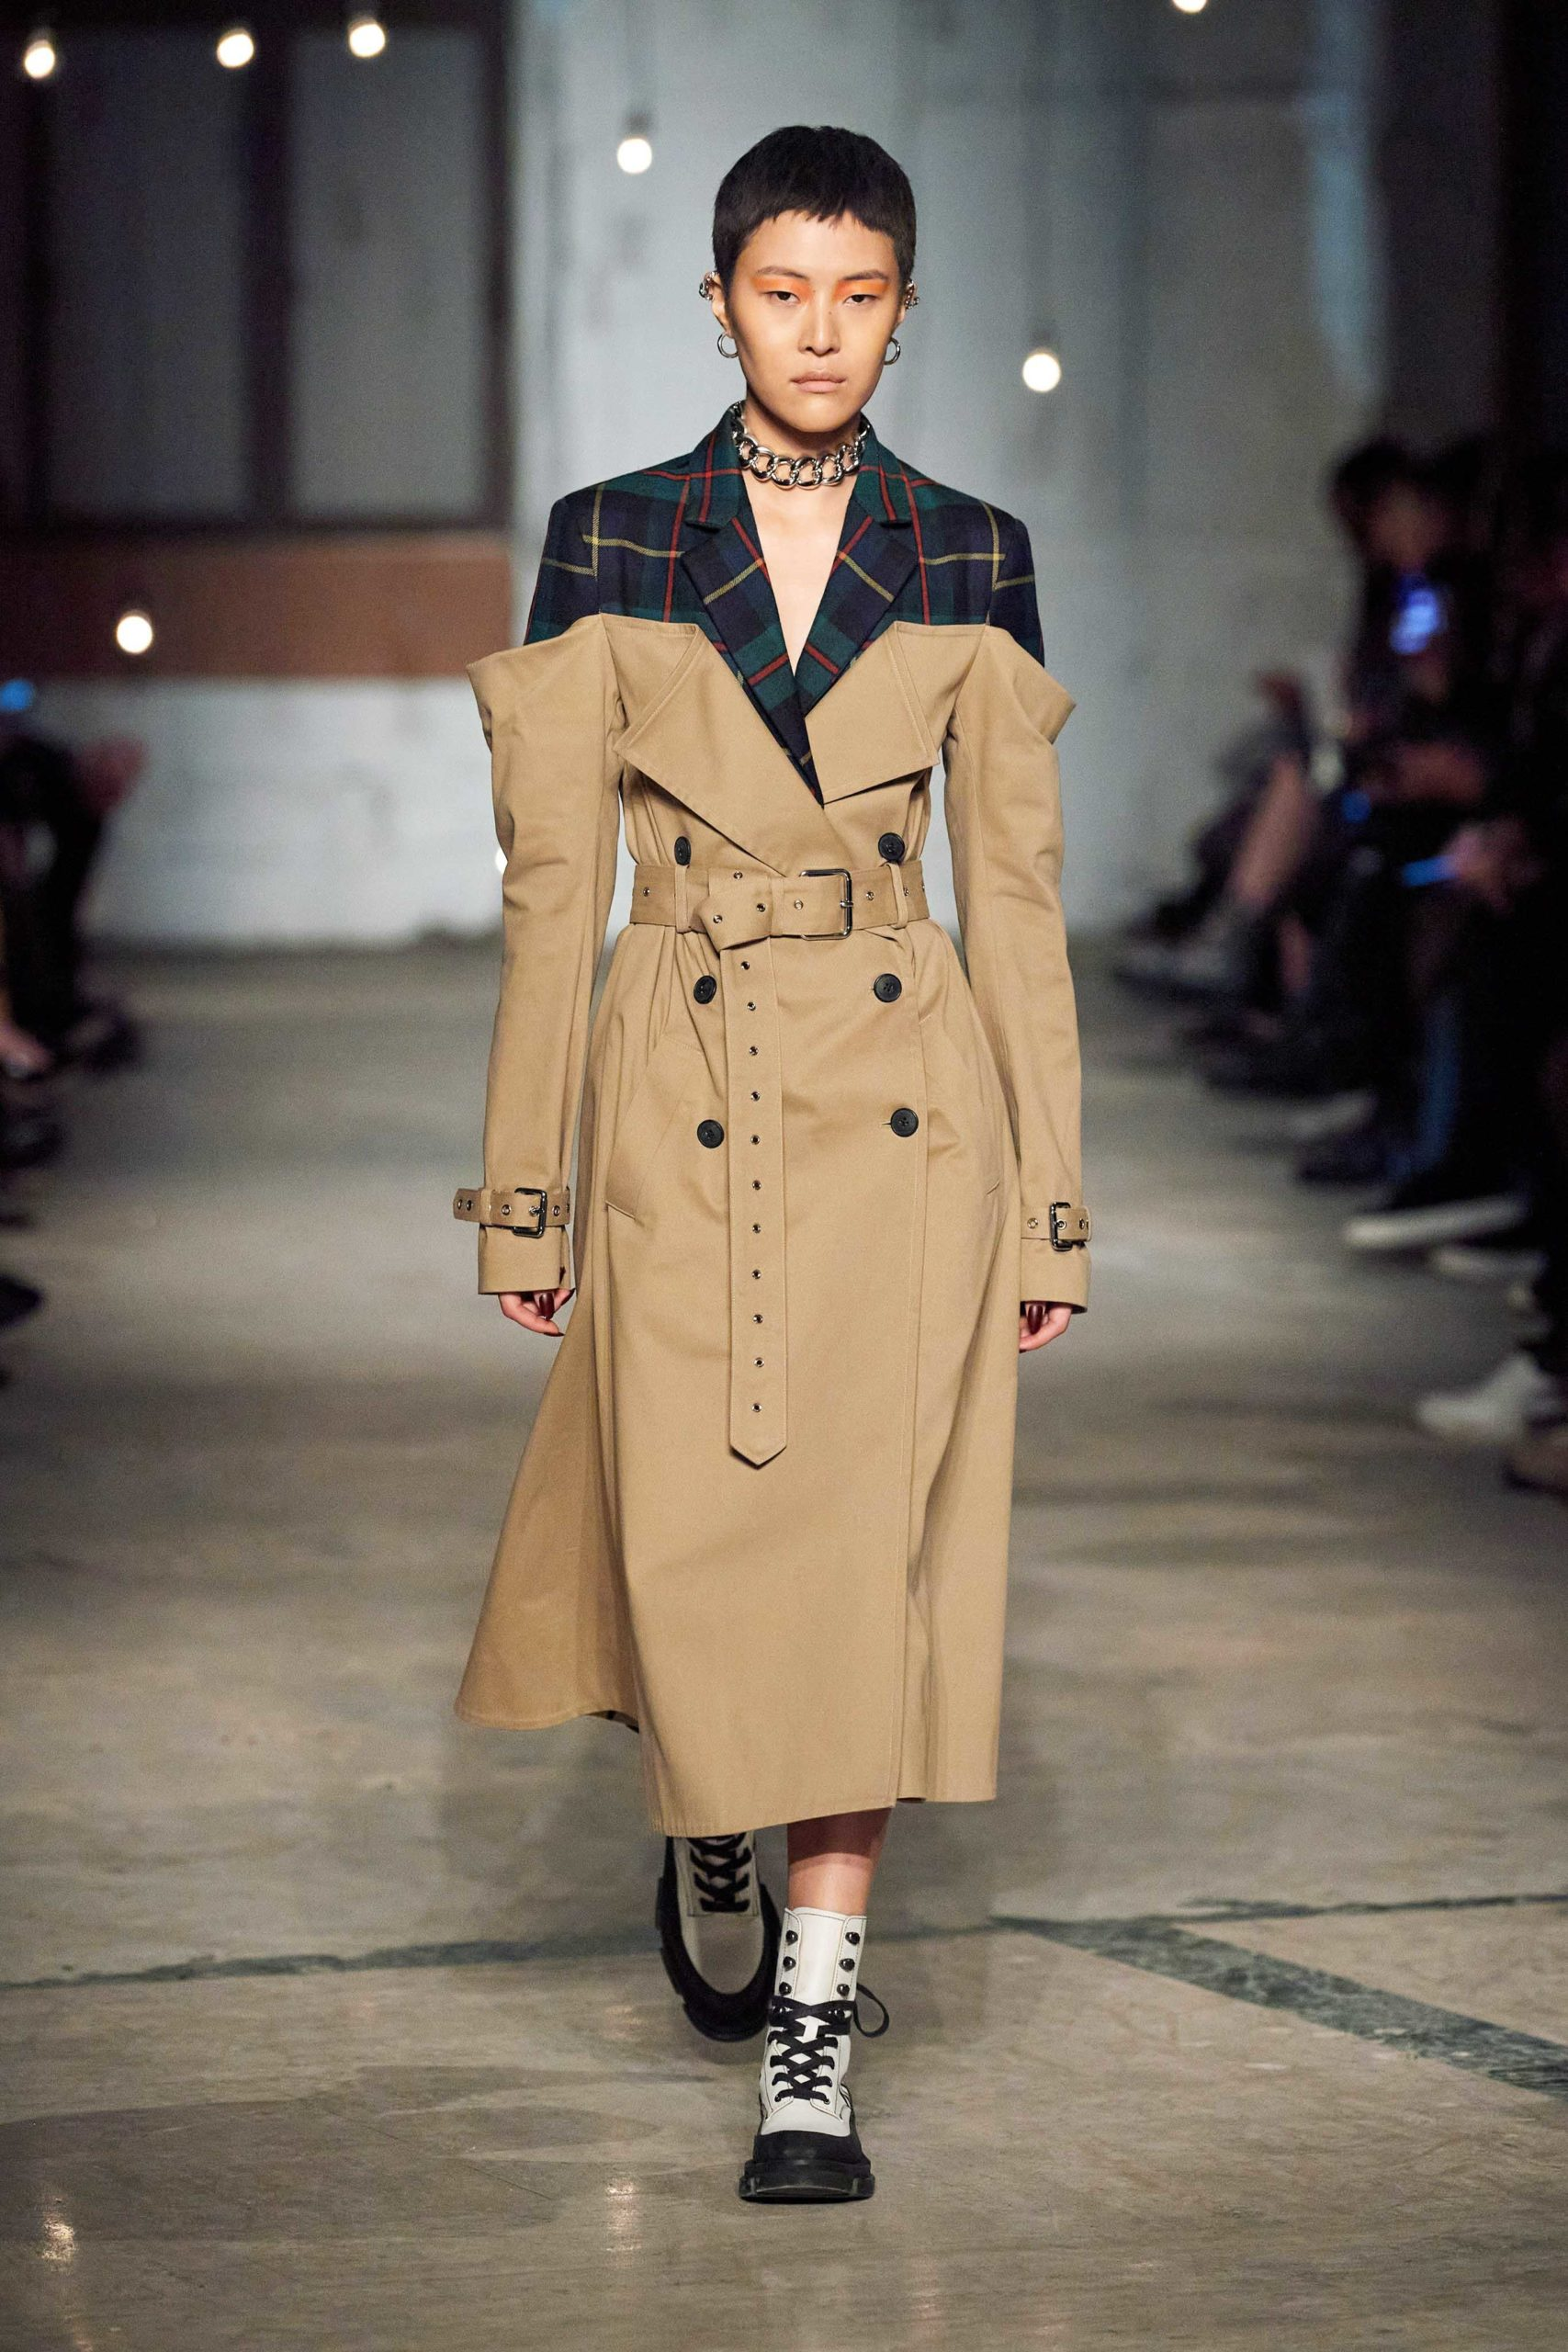 Monse Fall 2020 trends runway coverage Ready To Wear Vogue like shoulder